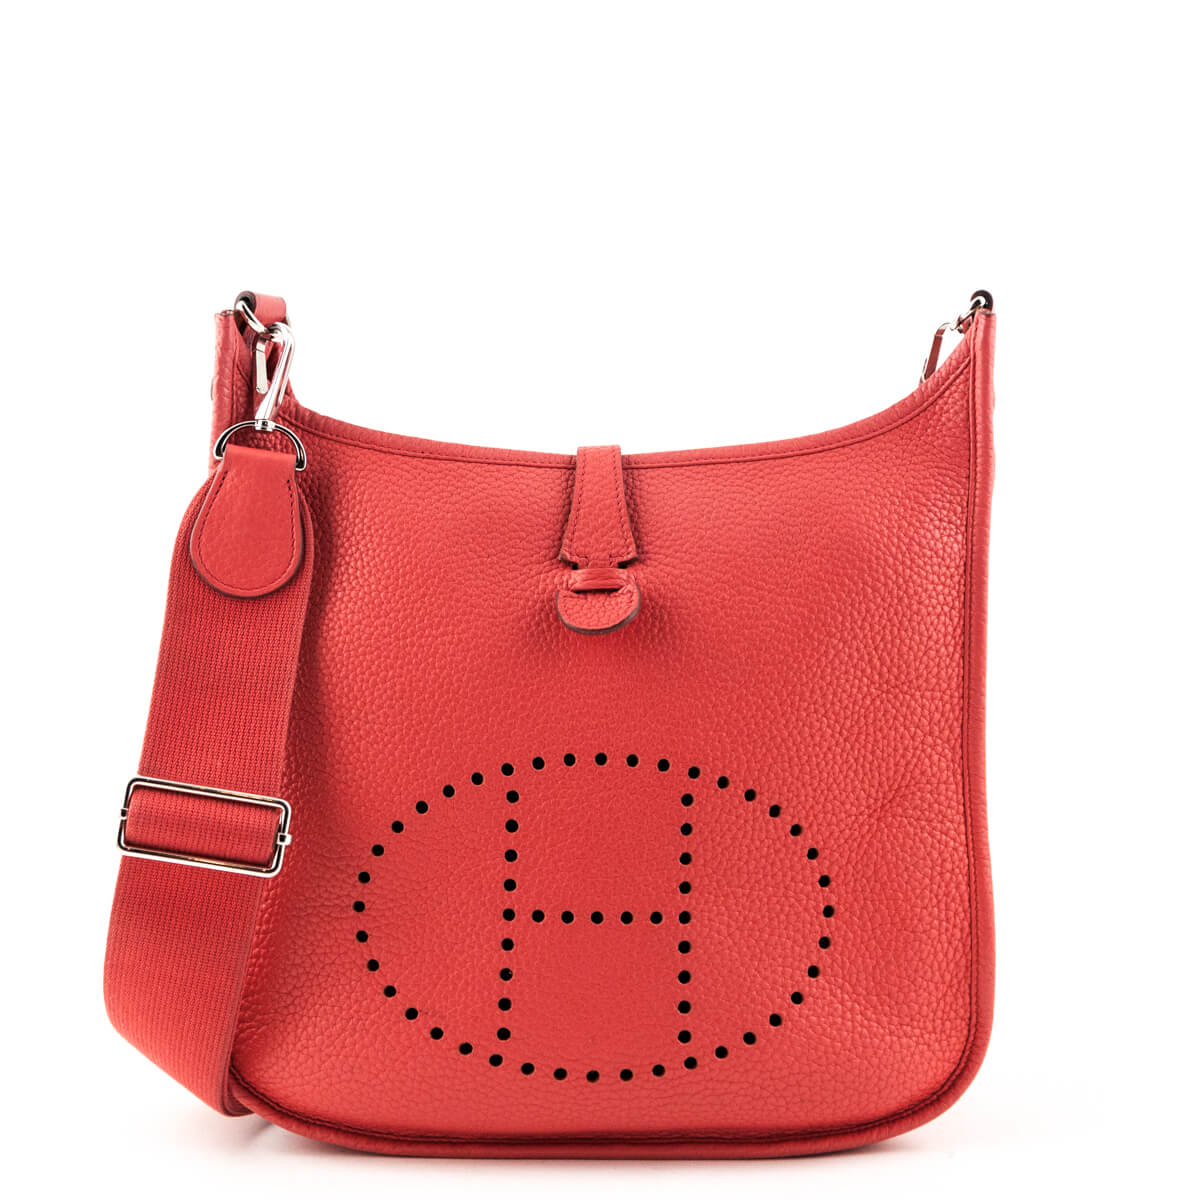 3ad910fbd2 Hermes Rouge Pivoine Clemence Evelyne III PM - LOVE that BAG - Preowned  Authentic Designer Handbags ...